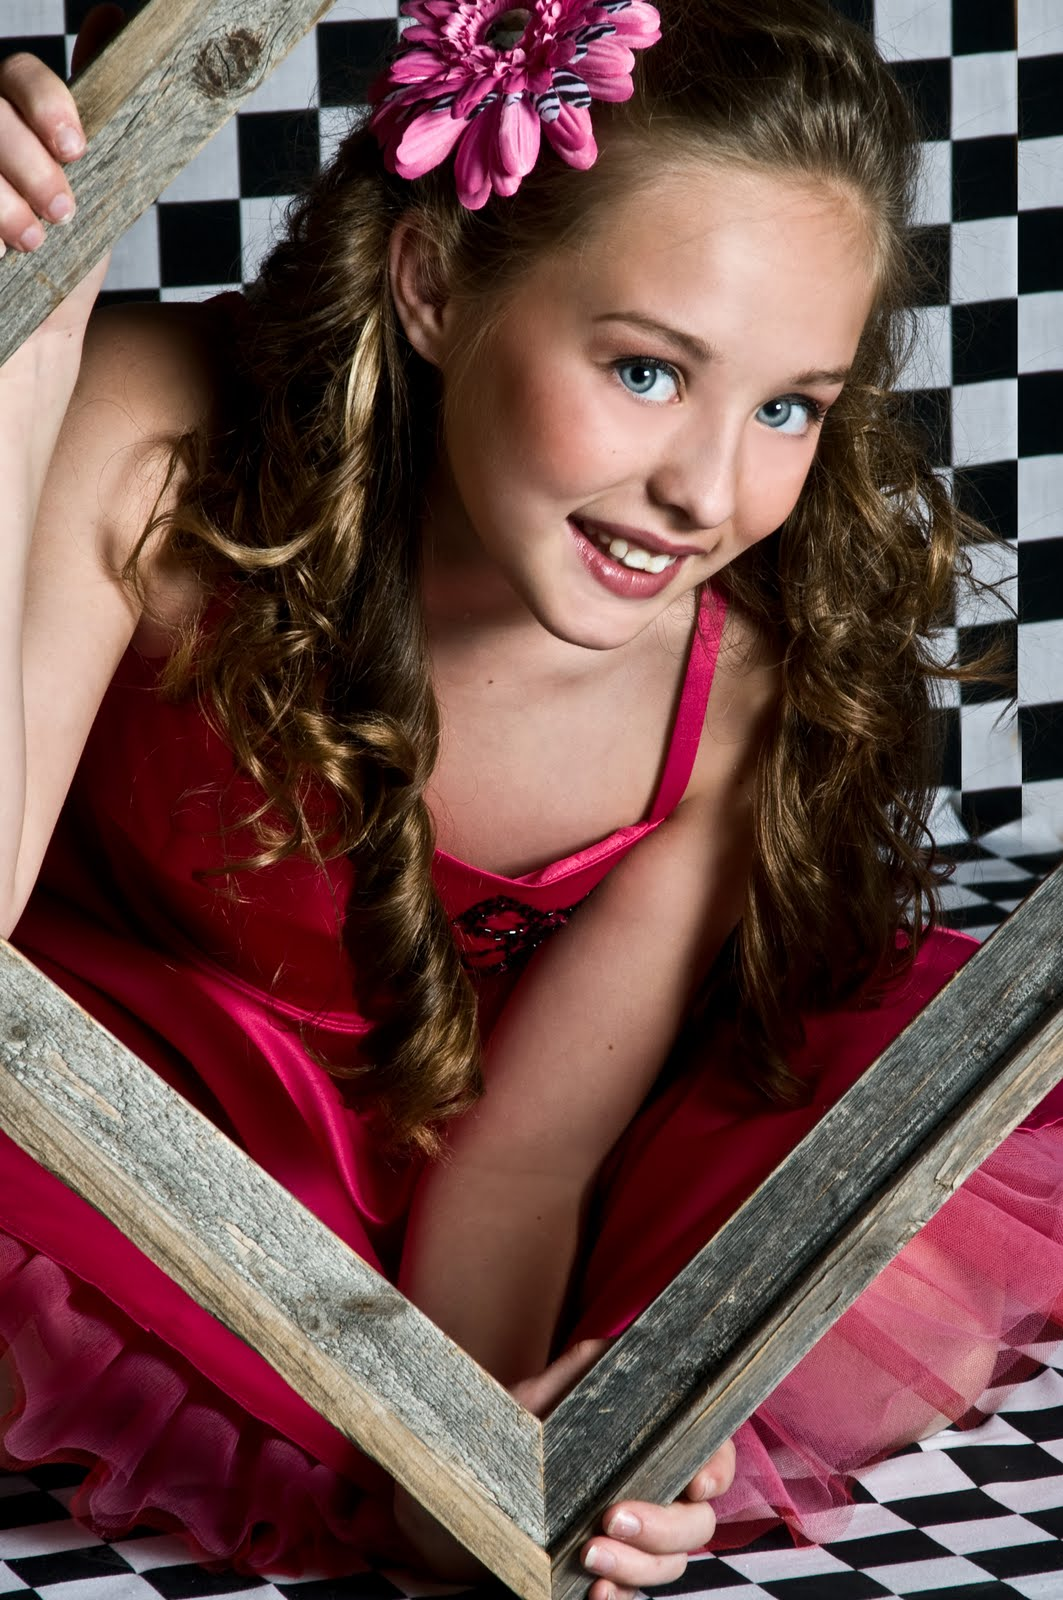 Here is amazing and beautiful Child Model MiKayla Childs